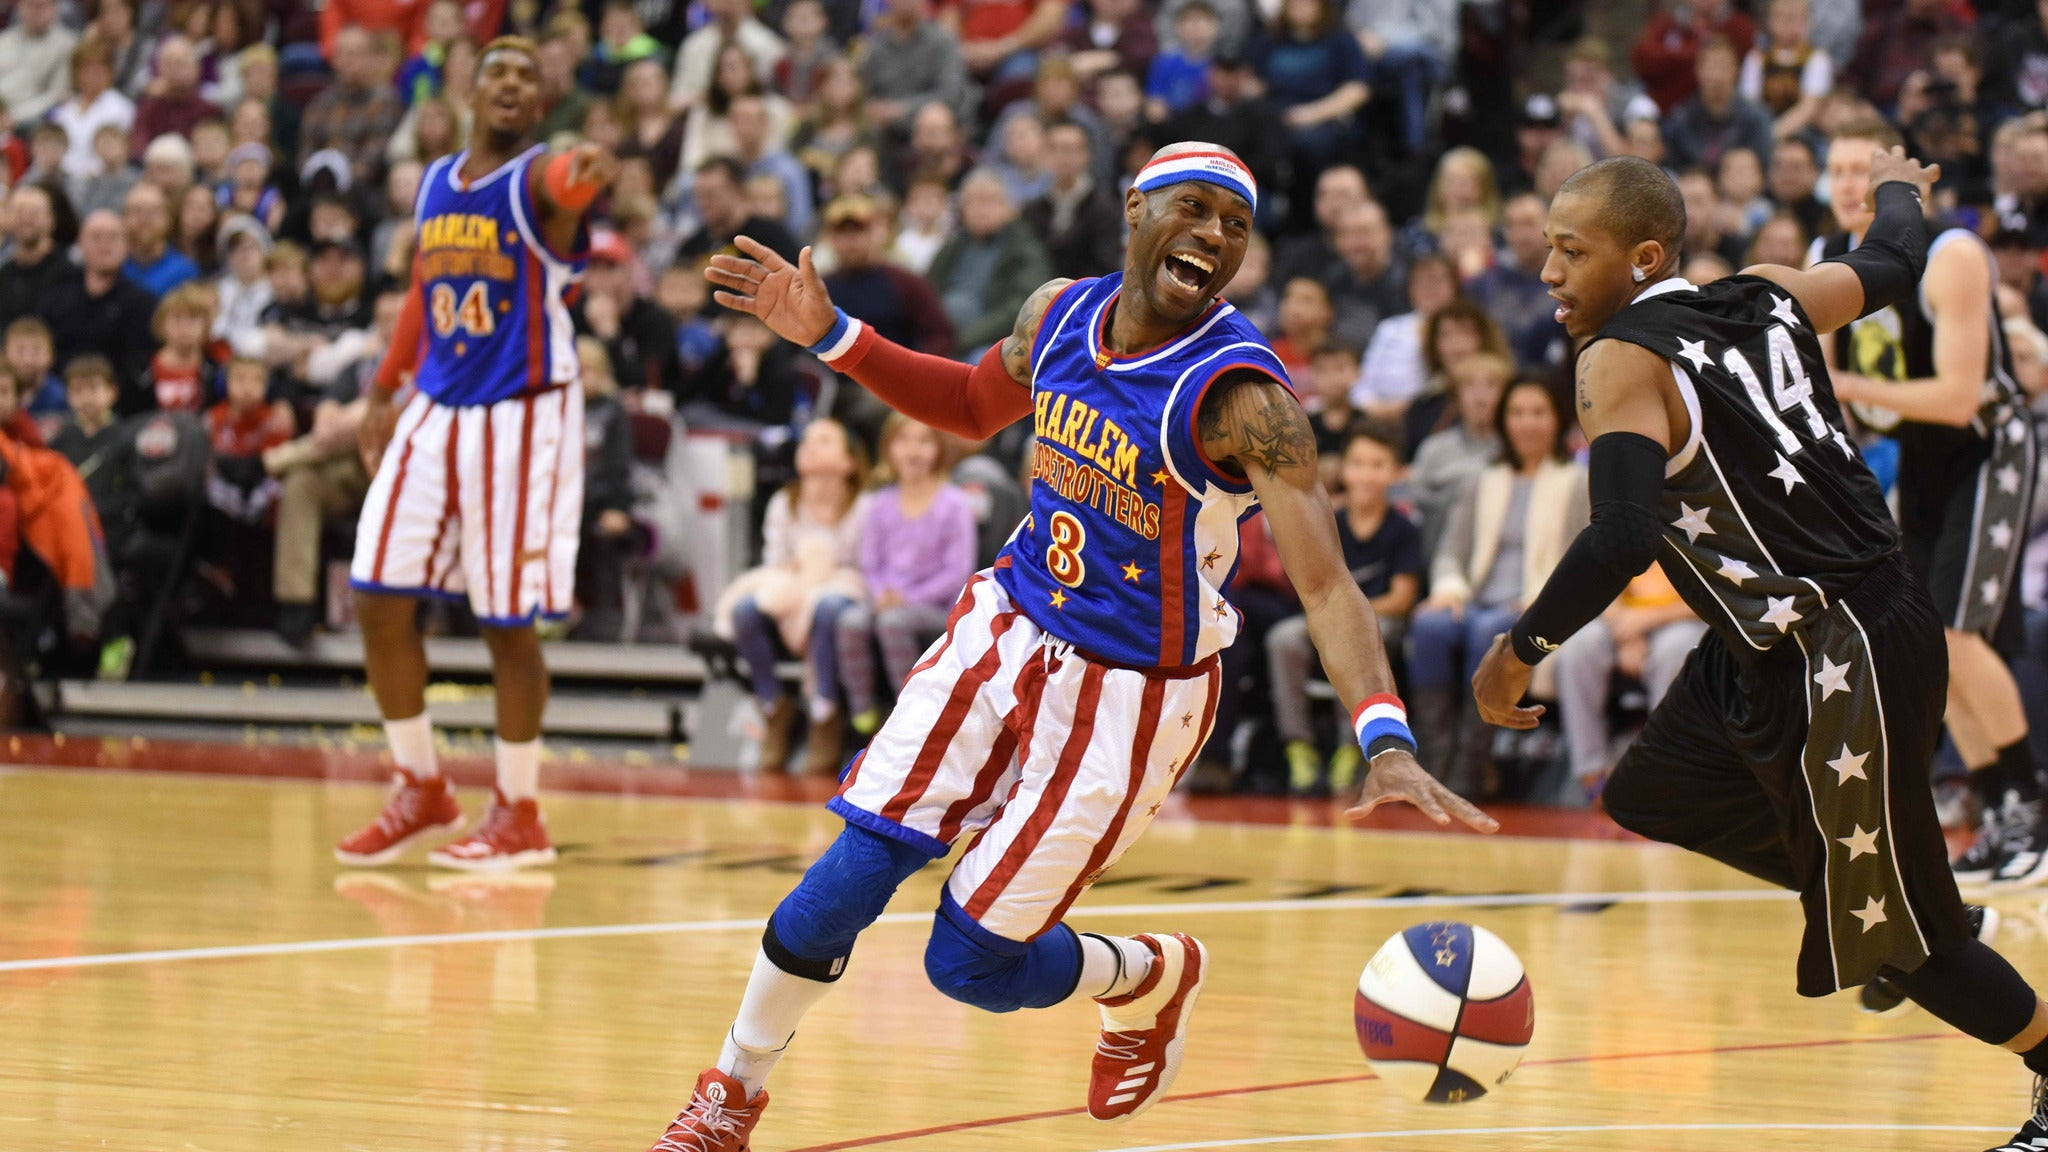 Harlem Globetrotters at EMU Convocation Center